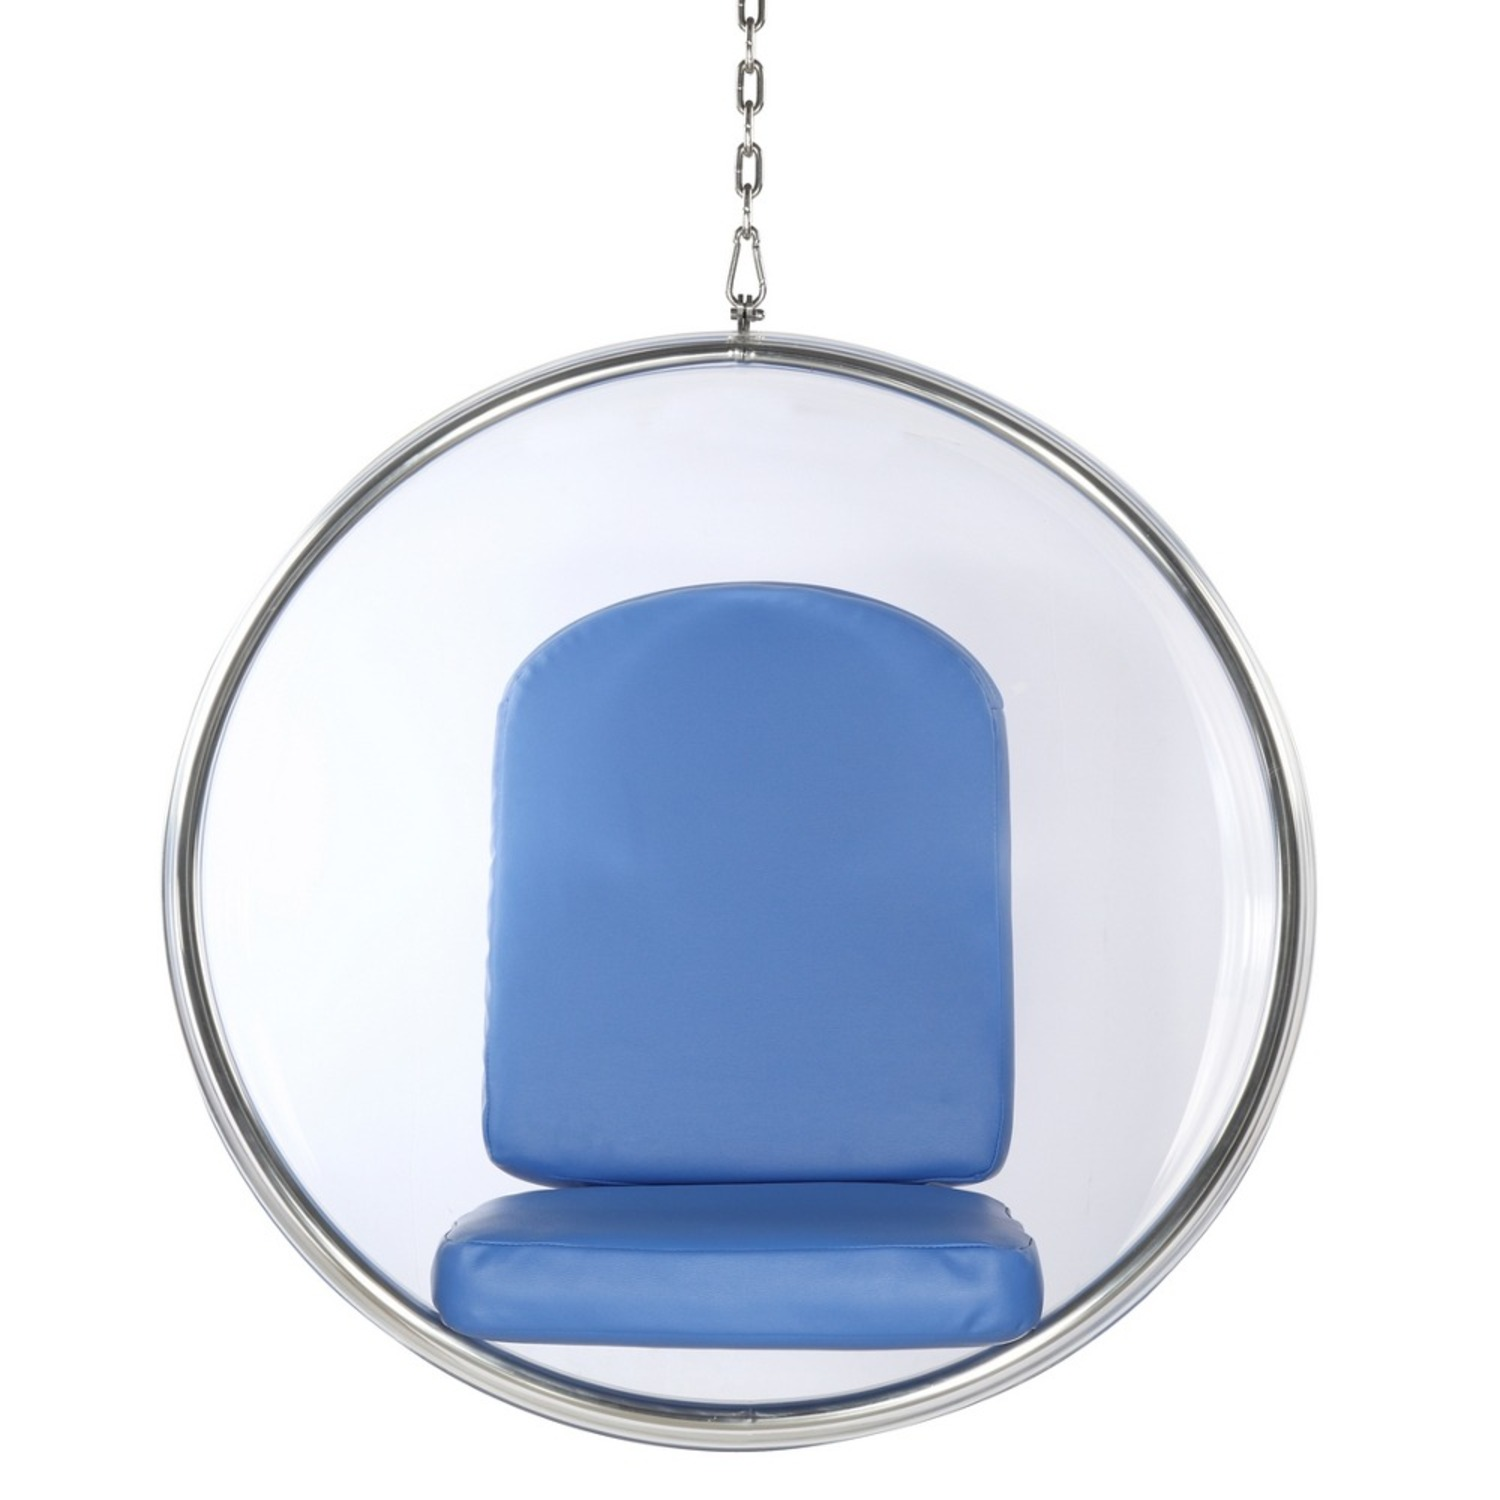 Hanging Chair In Clear Acrylic & Blue PU Leather - image-5